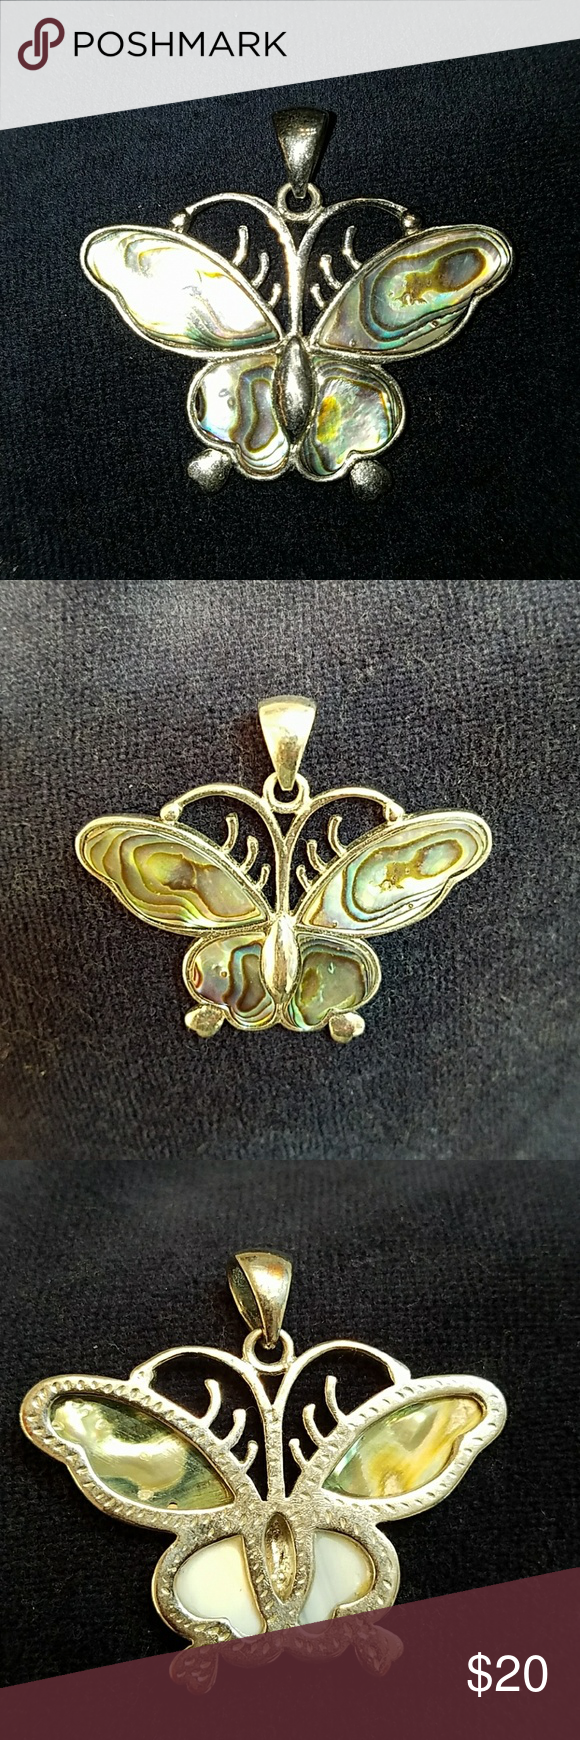 """Beautiful Butterfly Pendant Blue and green iridescent mother of pearl. Pendant only, no chain. 1 3/4 x 1 1/2"""" Jewelry Necklaces"""